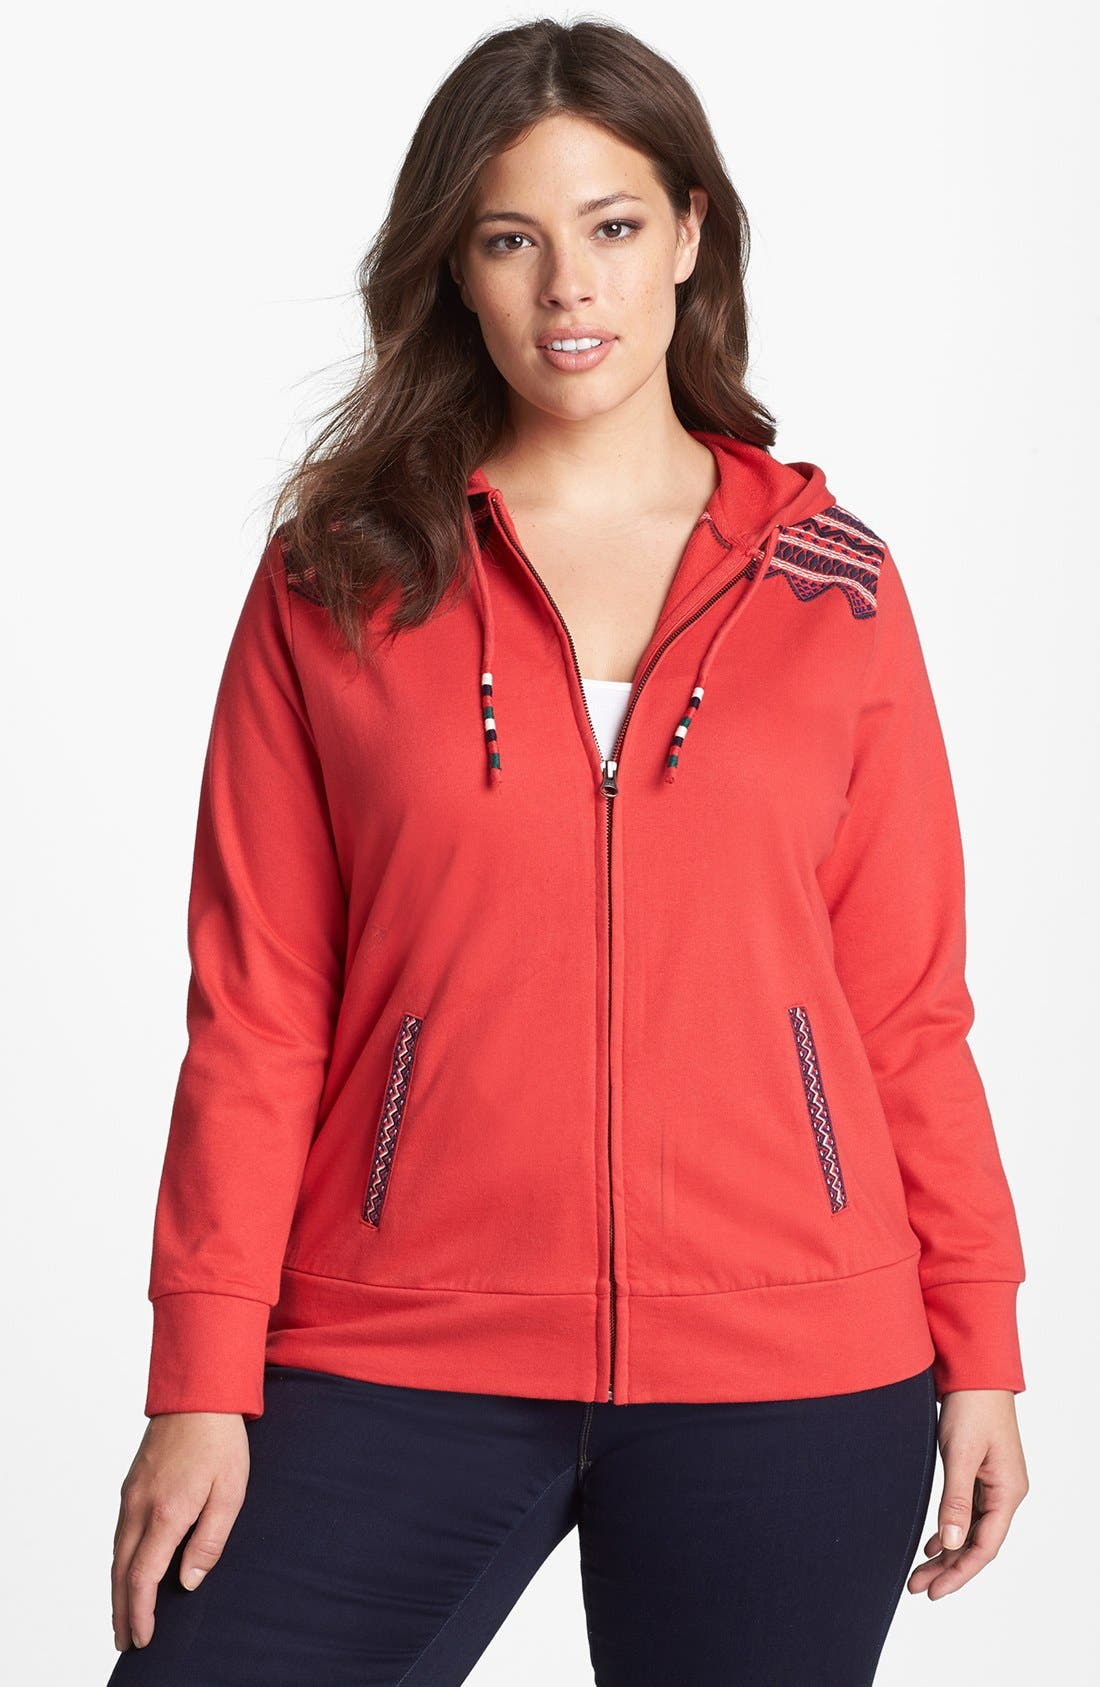 Alternate Image 1 Selected - Lucky Brand Embroidered Trim Front Zip Hoodie (Plus Size)